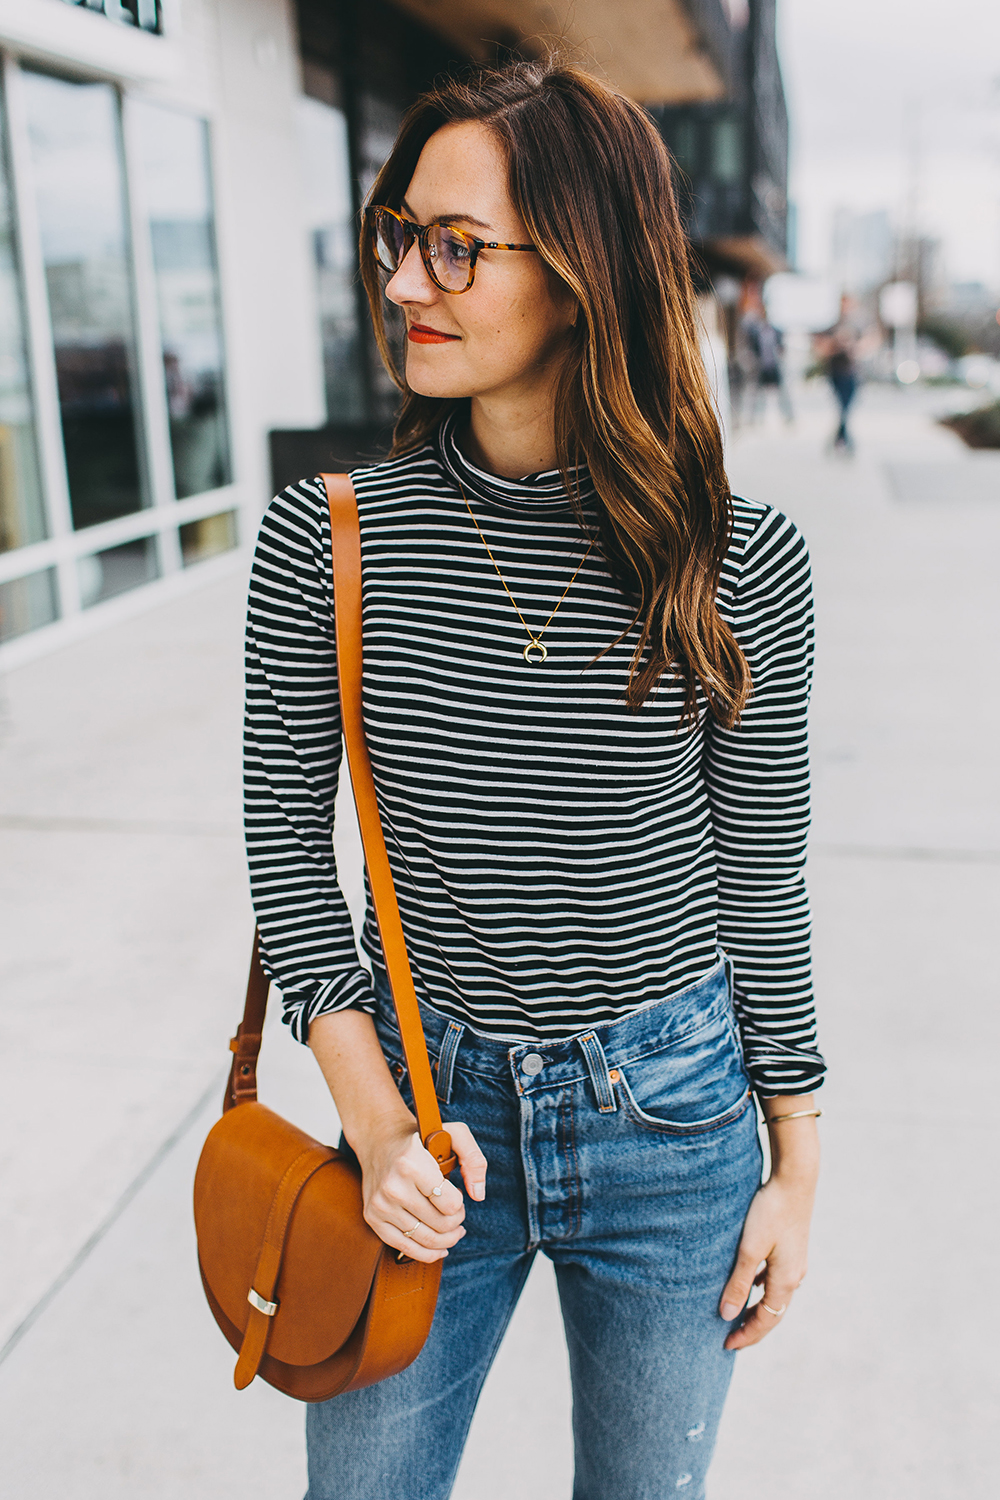 livvyland-blog-olivia-watson-austin-texas-fashion-blogger-j-crew-striped-turtleneck-outfit-idea-inspiration-3